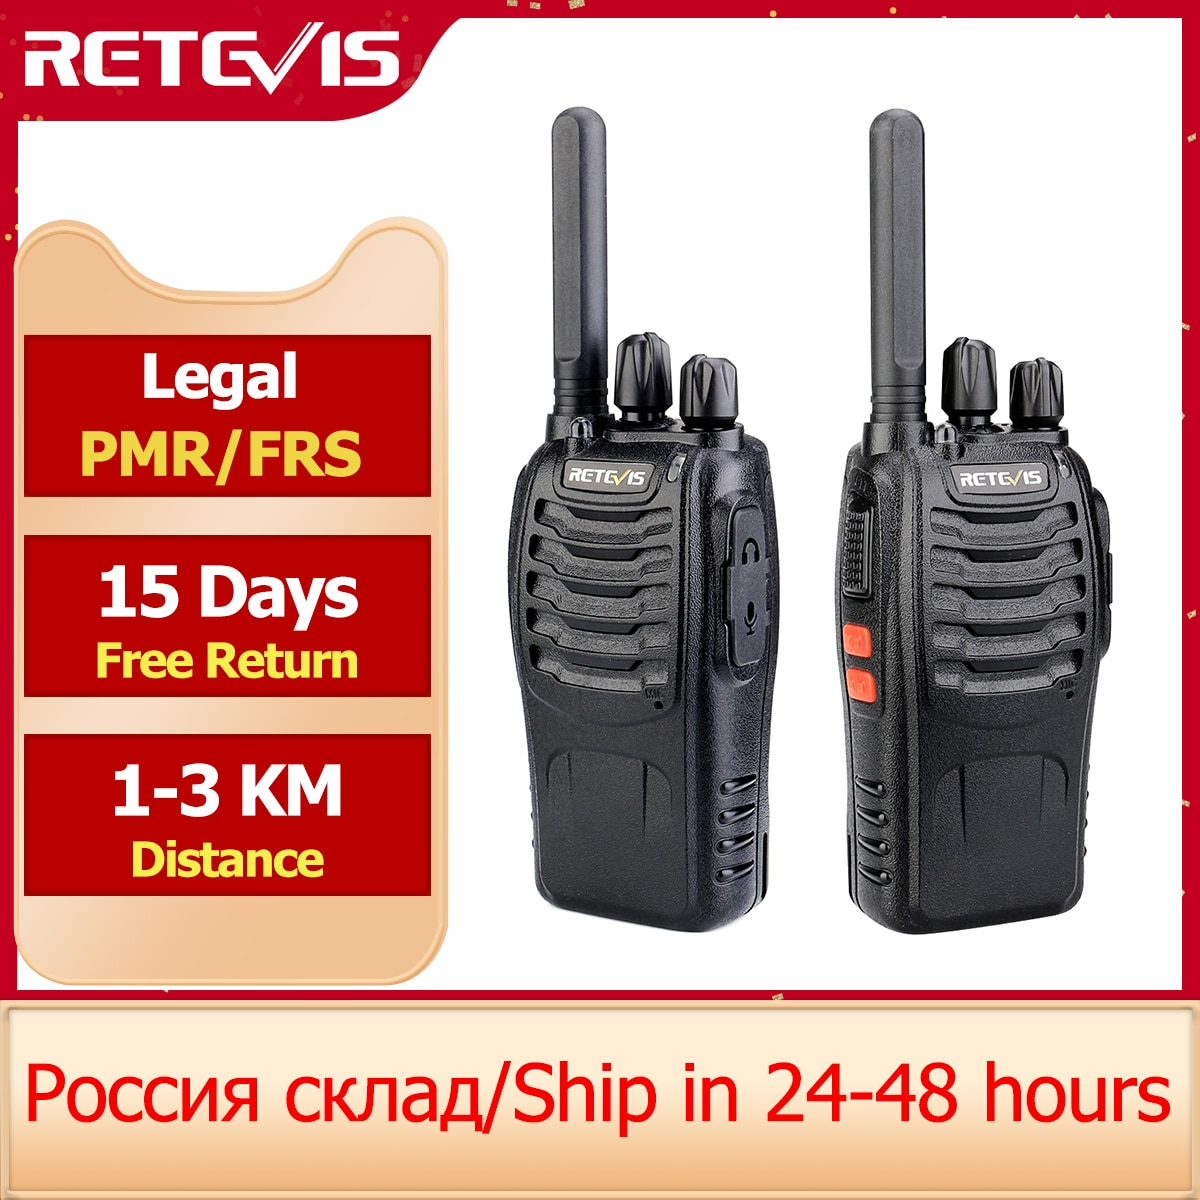 Retevis H777 Plus PMR 446 Walkie-Talkies 1 or 2 pcs Handy Two-Way Radio Professional Walkie talkie R